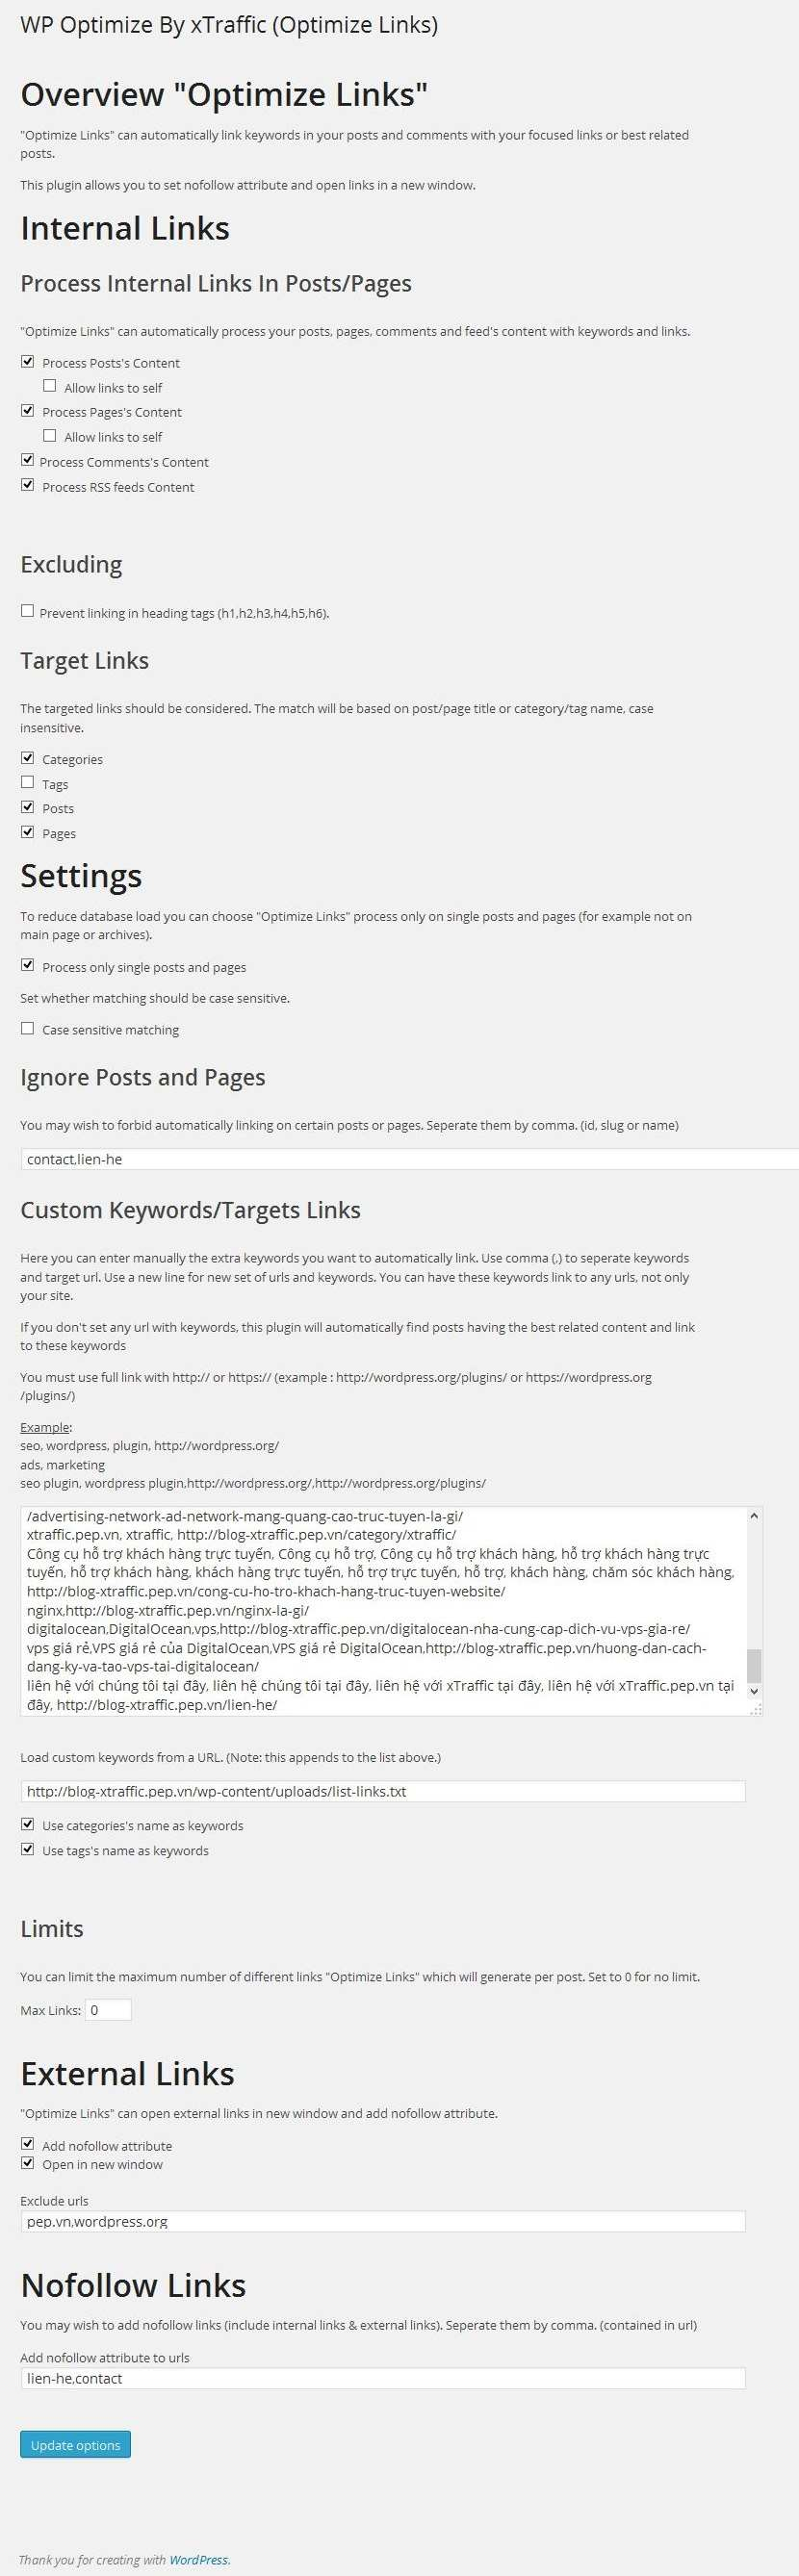 WP Optimize By xTraffic Plugin WordPress, Download, Install